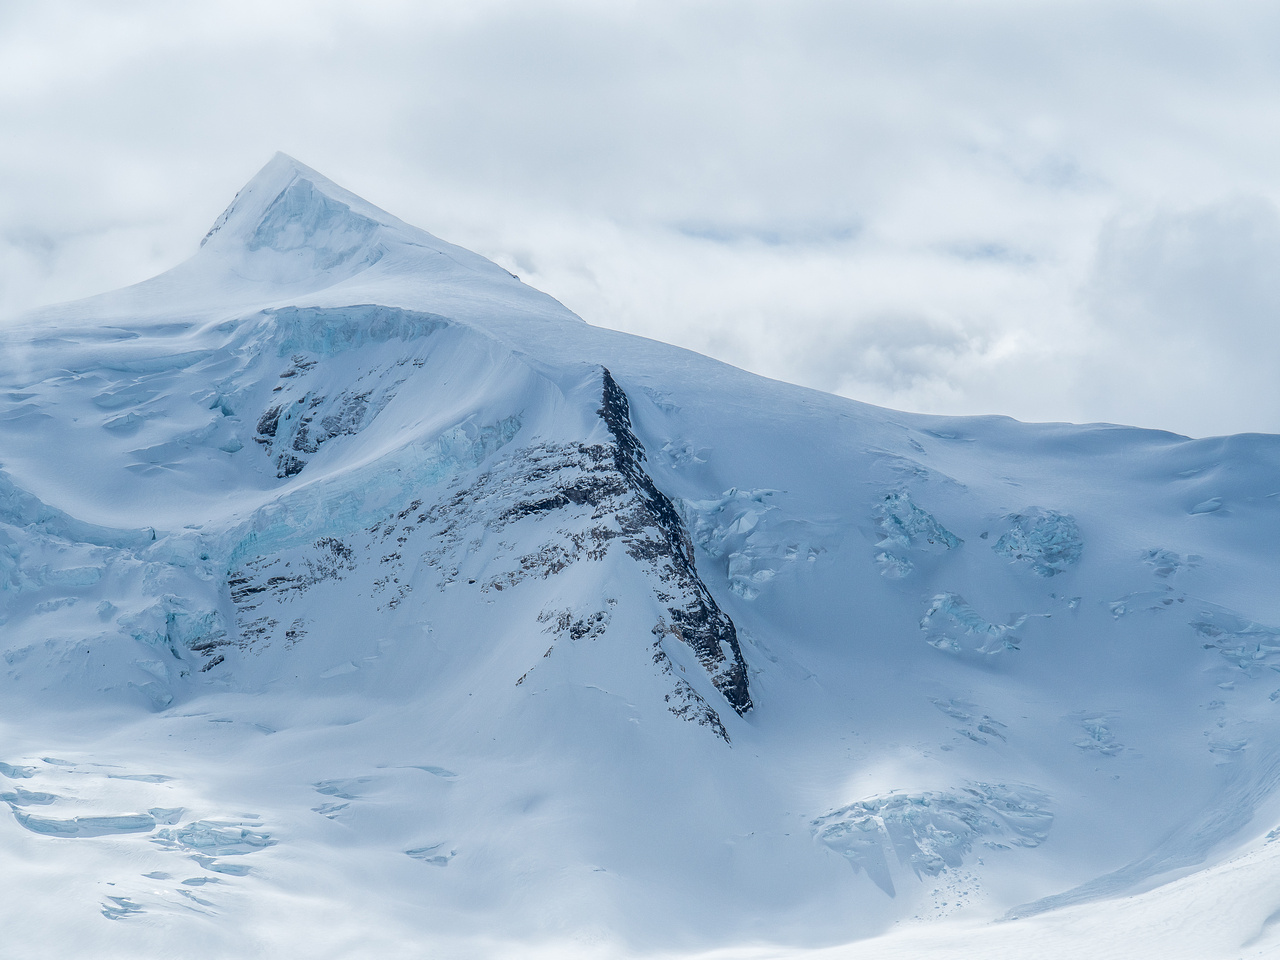 Resplendent is a well-named peak. Look at her gorgeous snow and ice summit - how can you not want to ski that?!